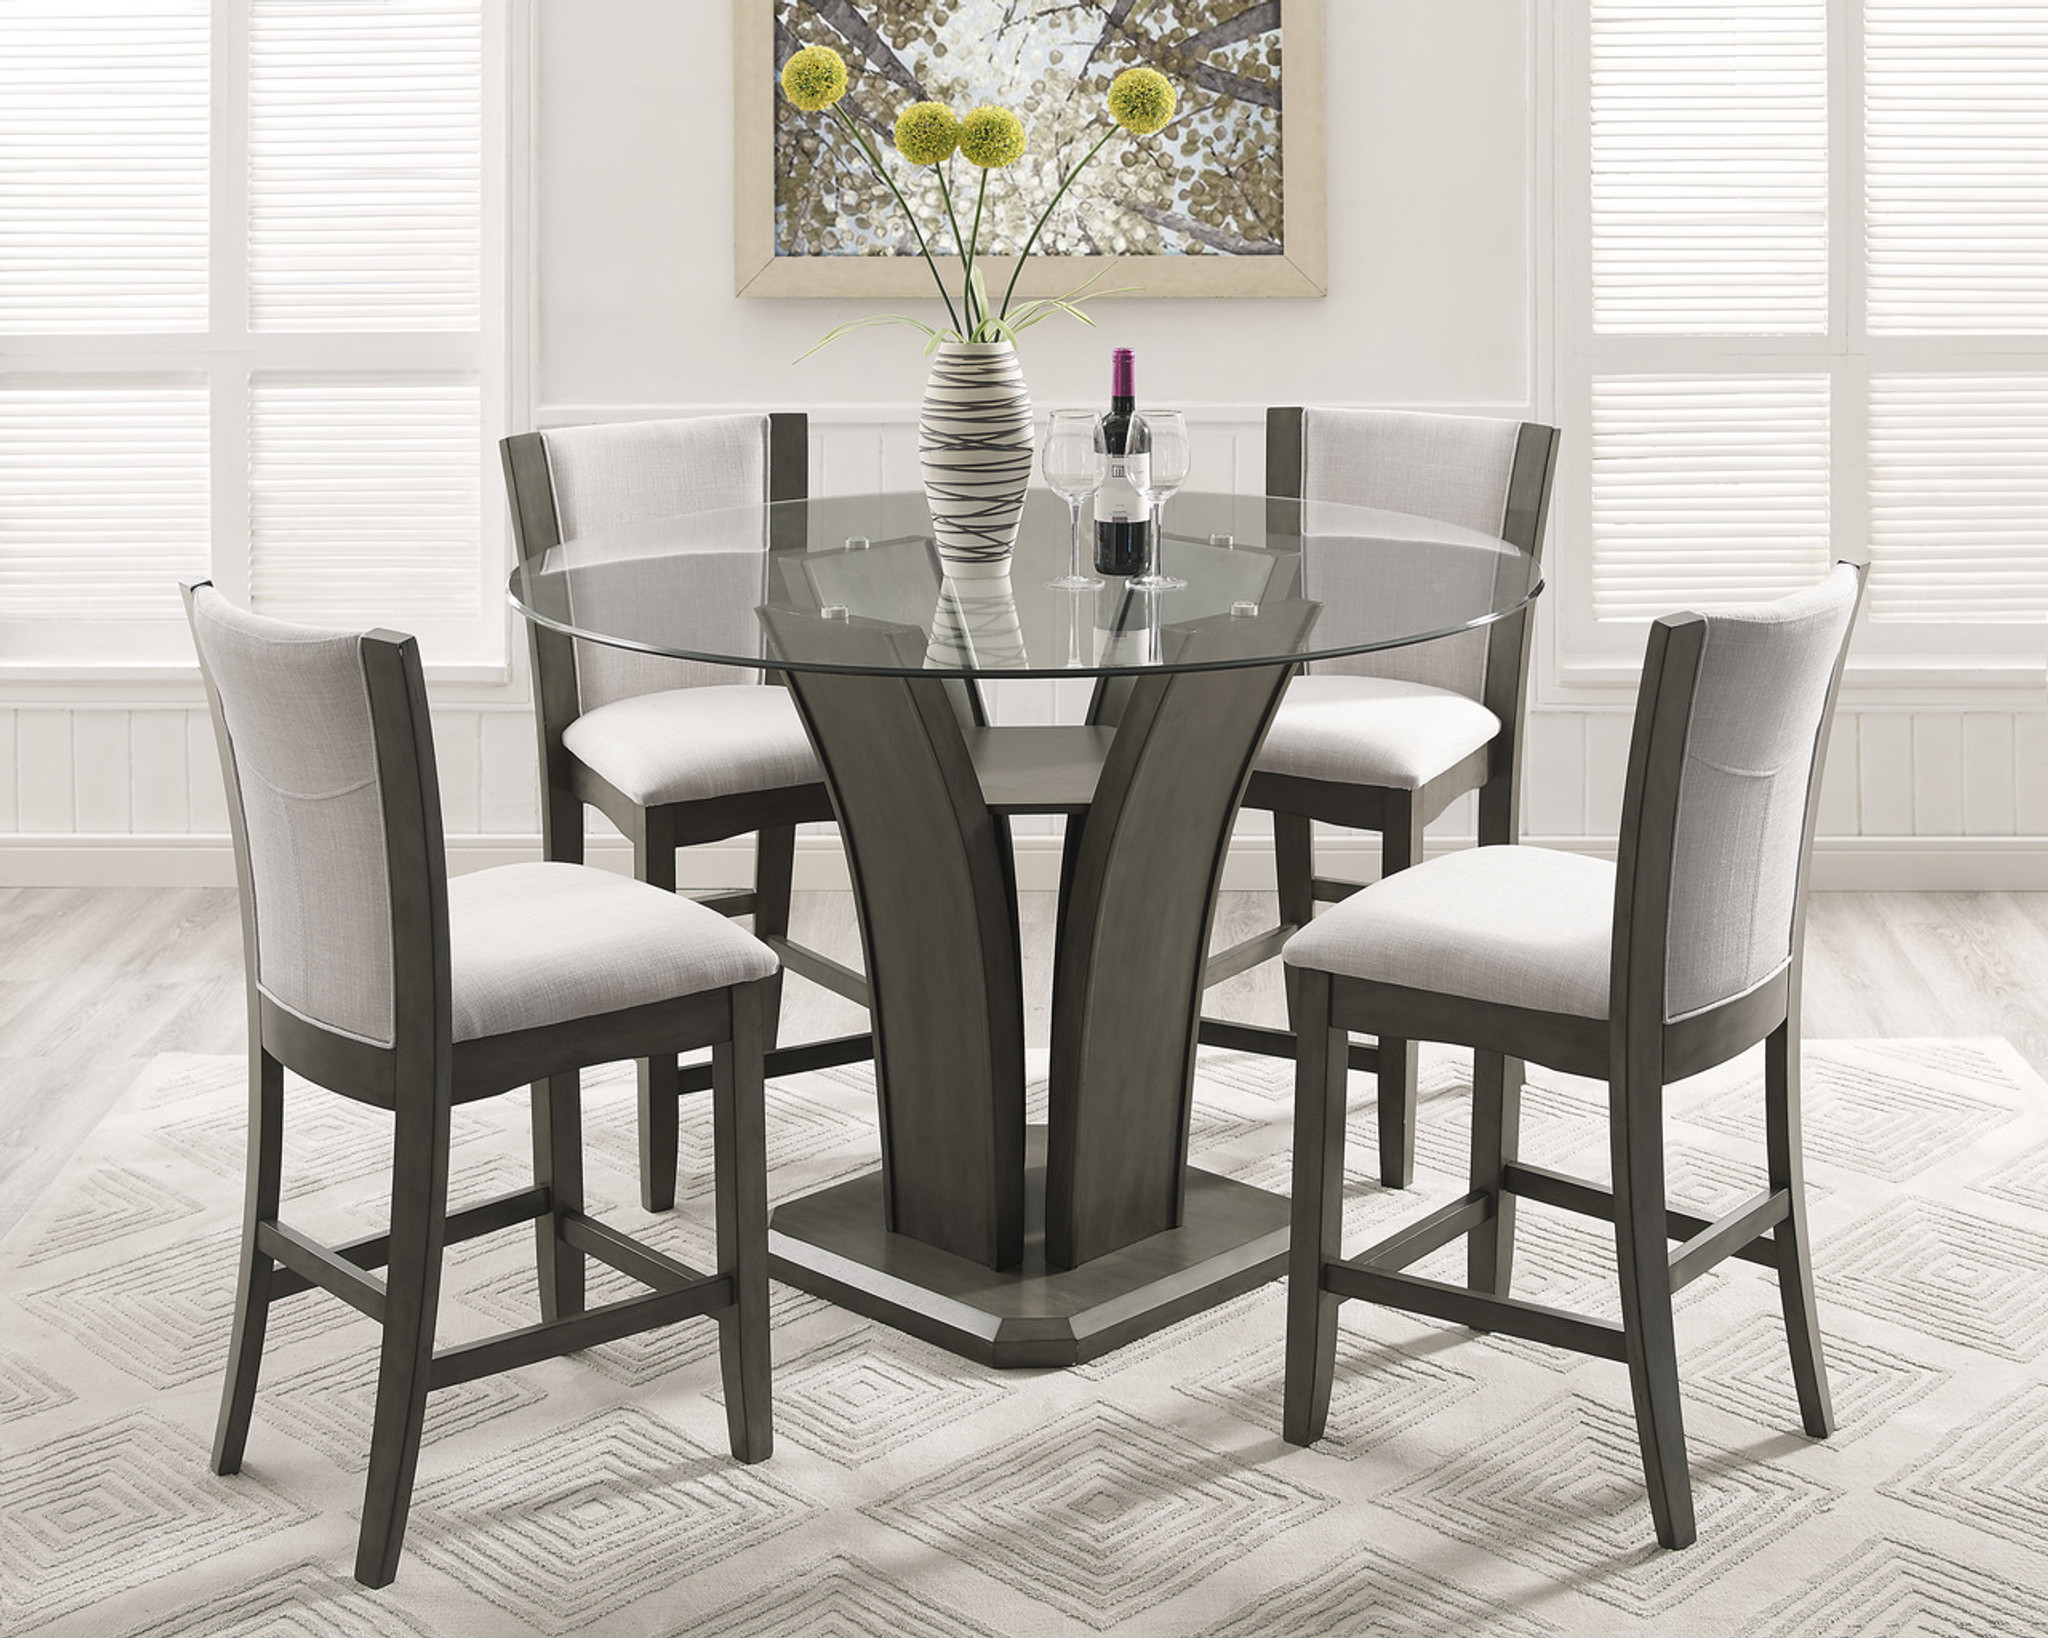 CAMELIA COUNTER HEIGHT DINING TABLE TOP 5 PC Set - Grey